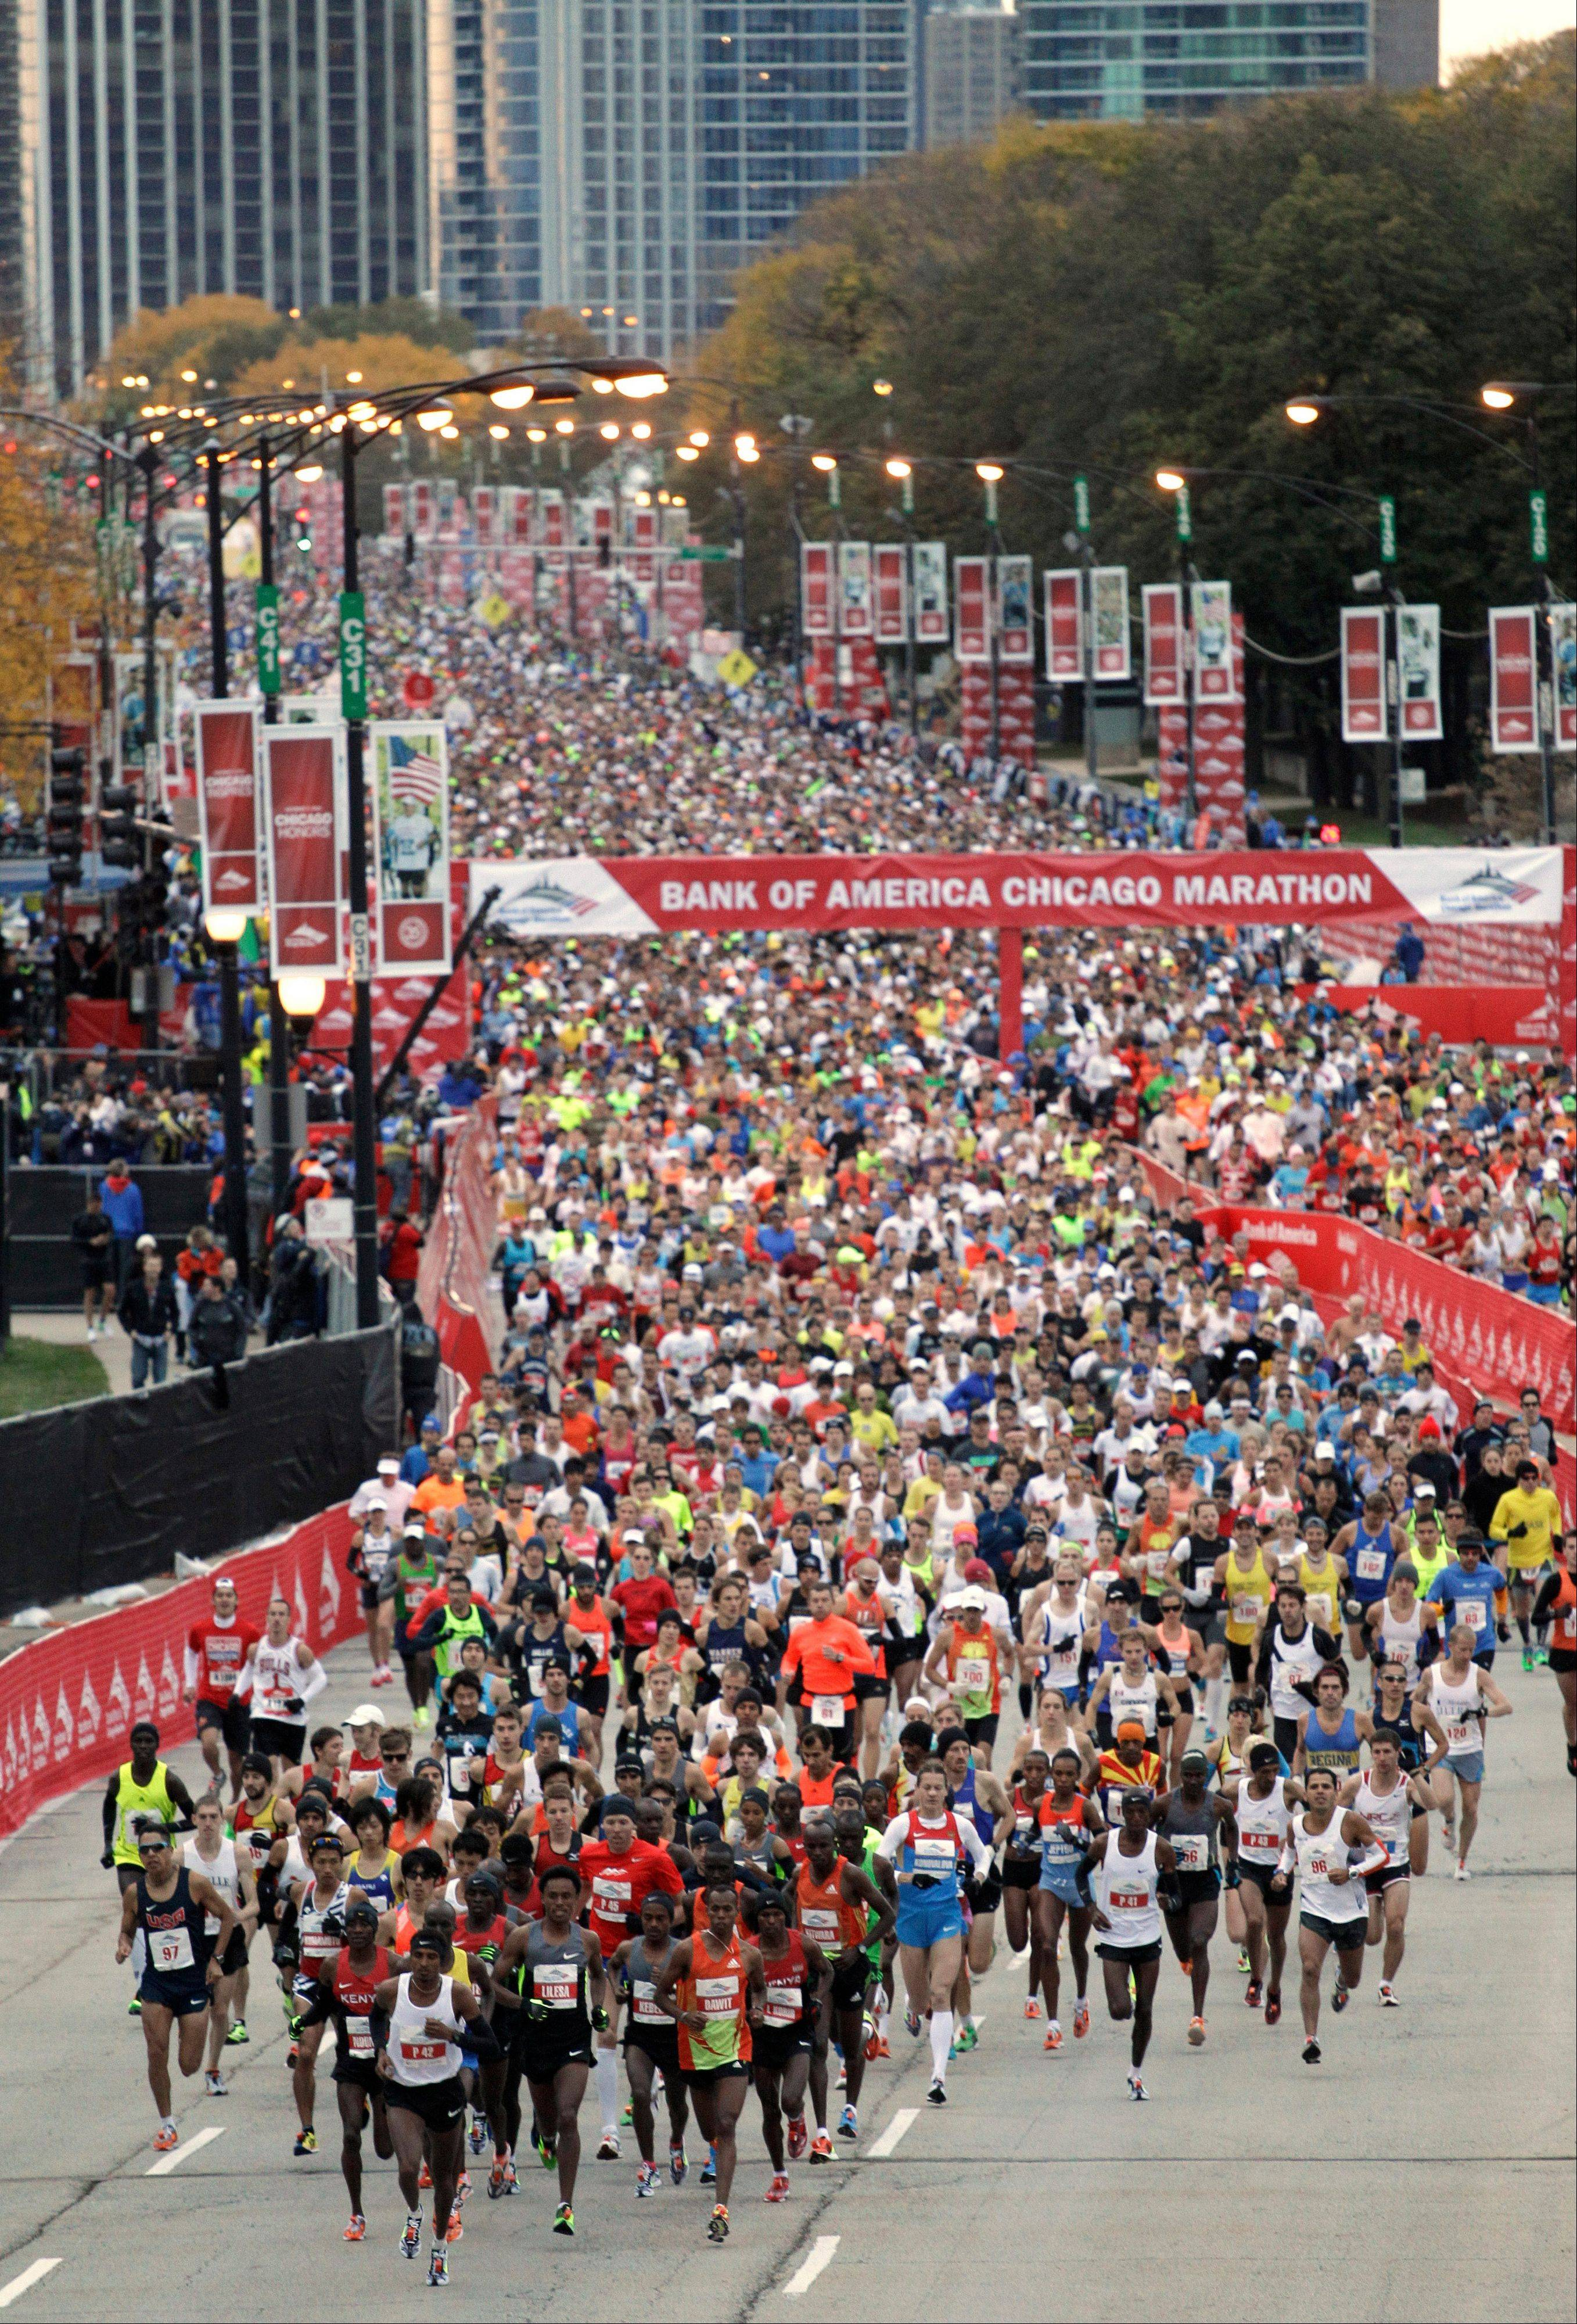 Runners leave the starting line during the 2012 Chicago Marathon. About 45,000 athletes will participate in this year's race, which will begin at Grant Park on Sunday morning.